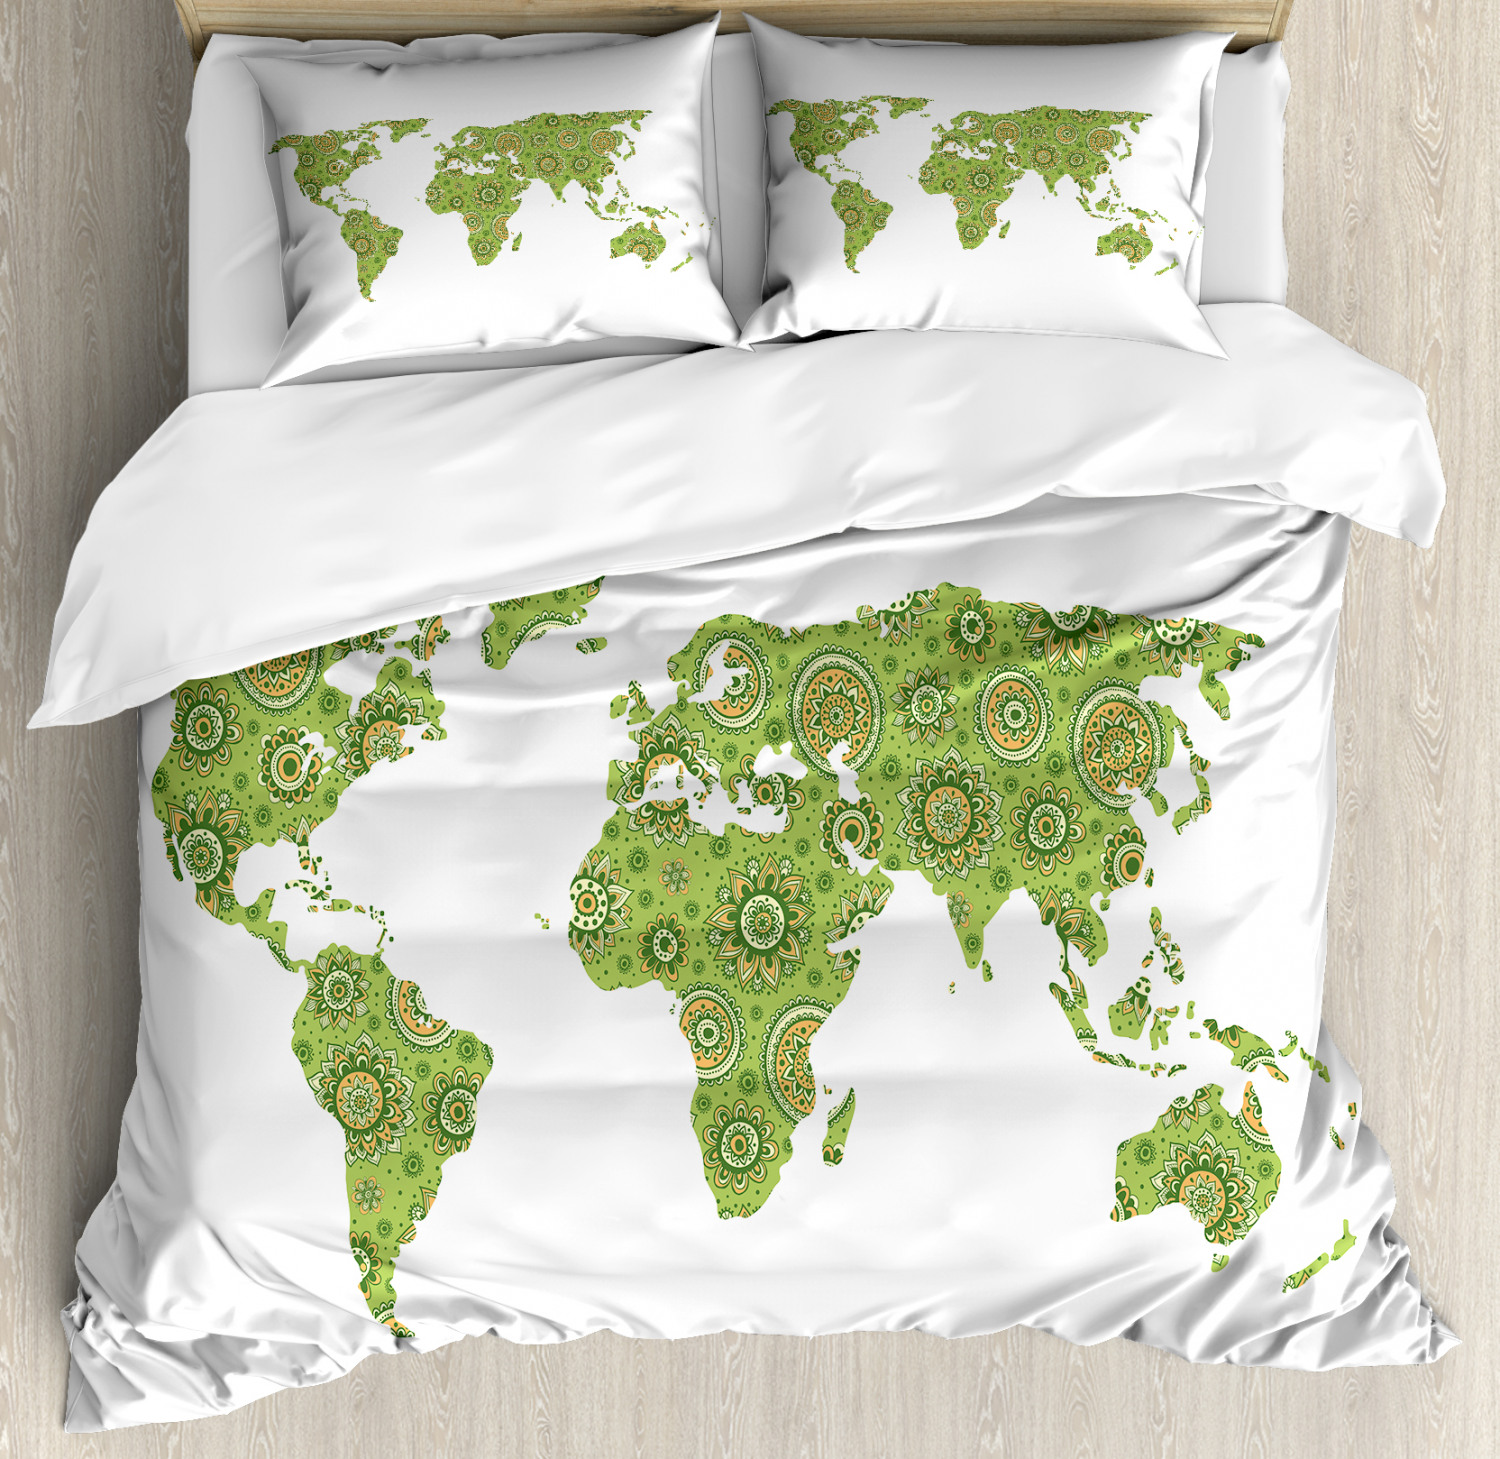 Details about World Map Duvet Cover Set with Pillow Shams Ethnic Chart Print